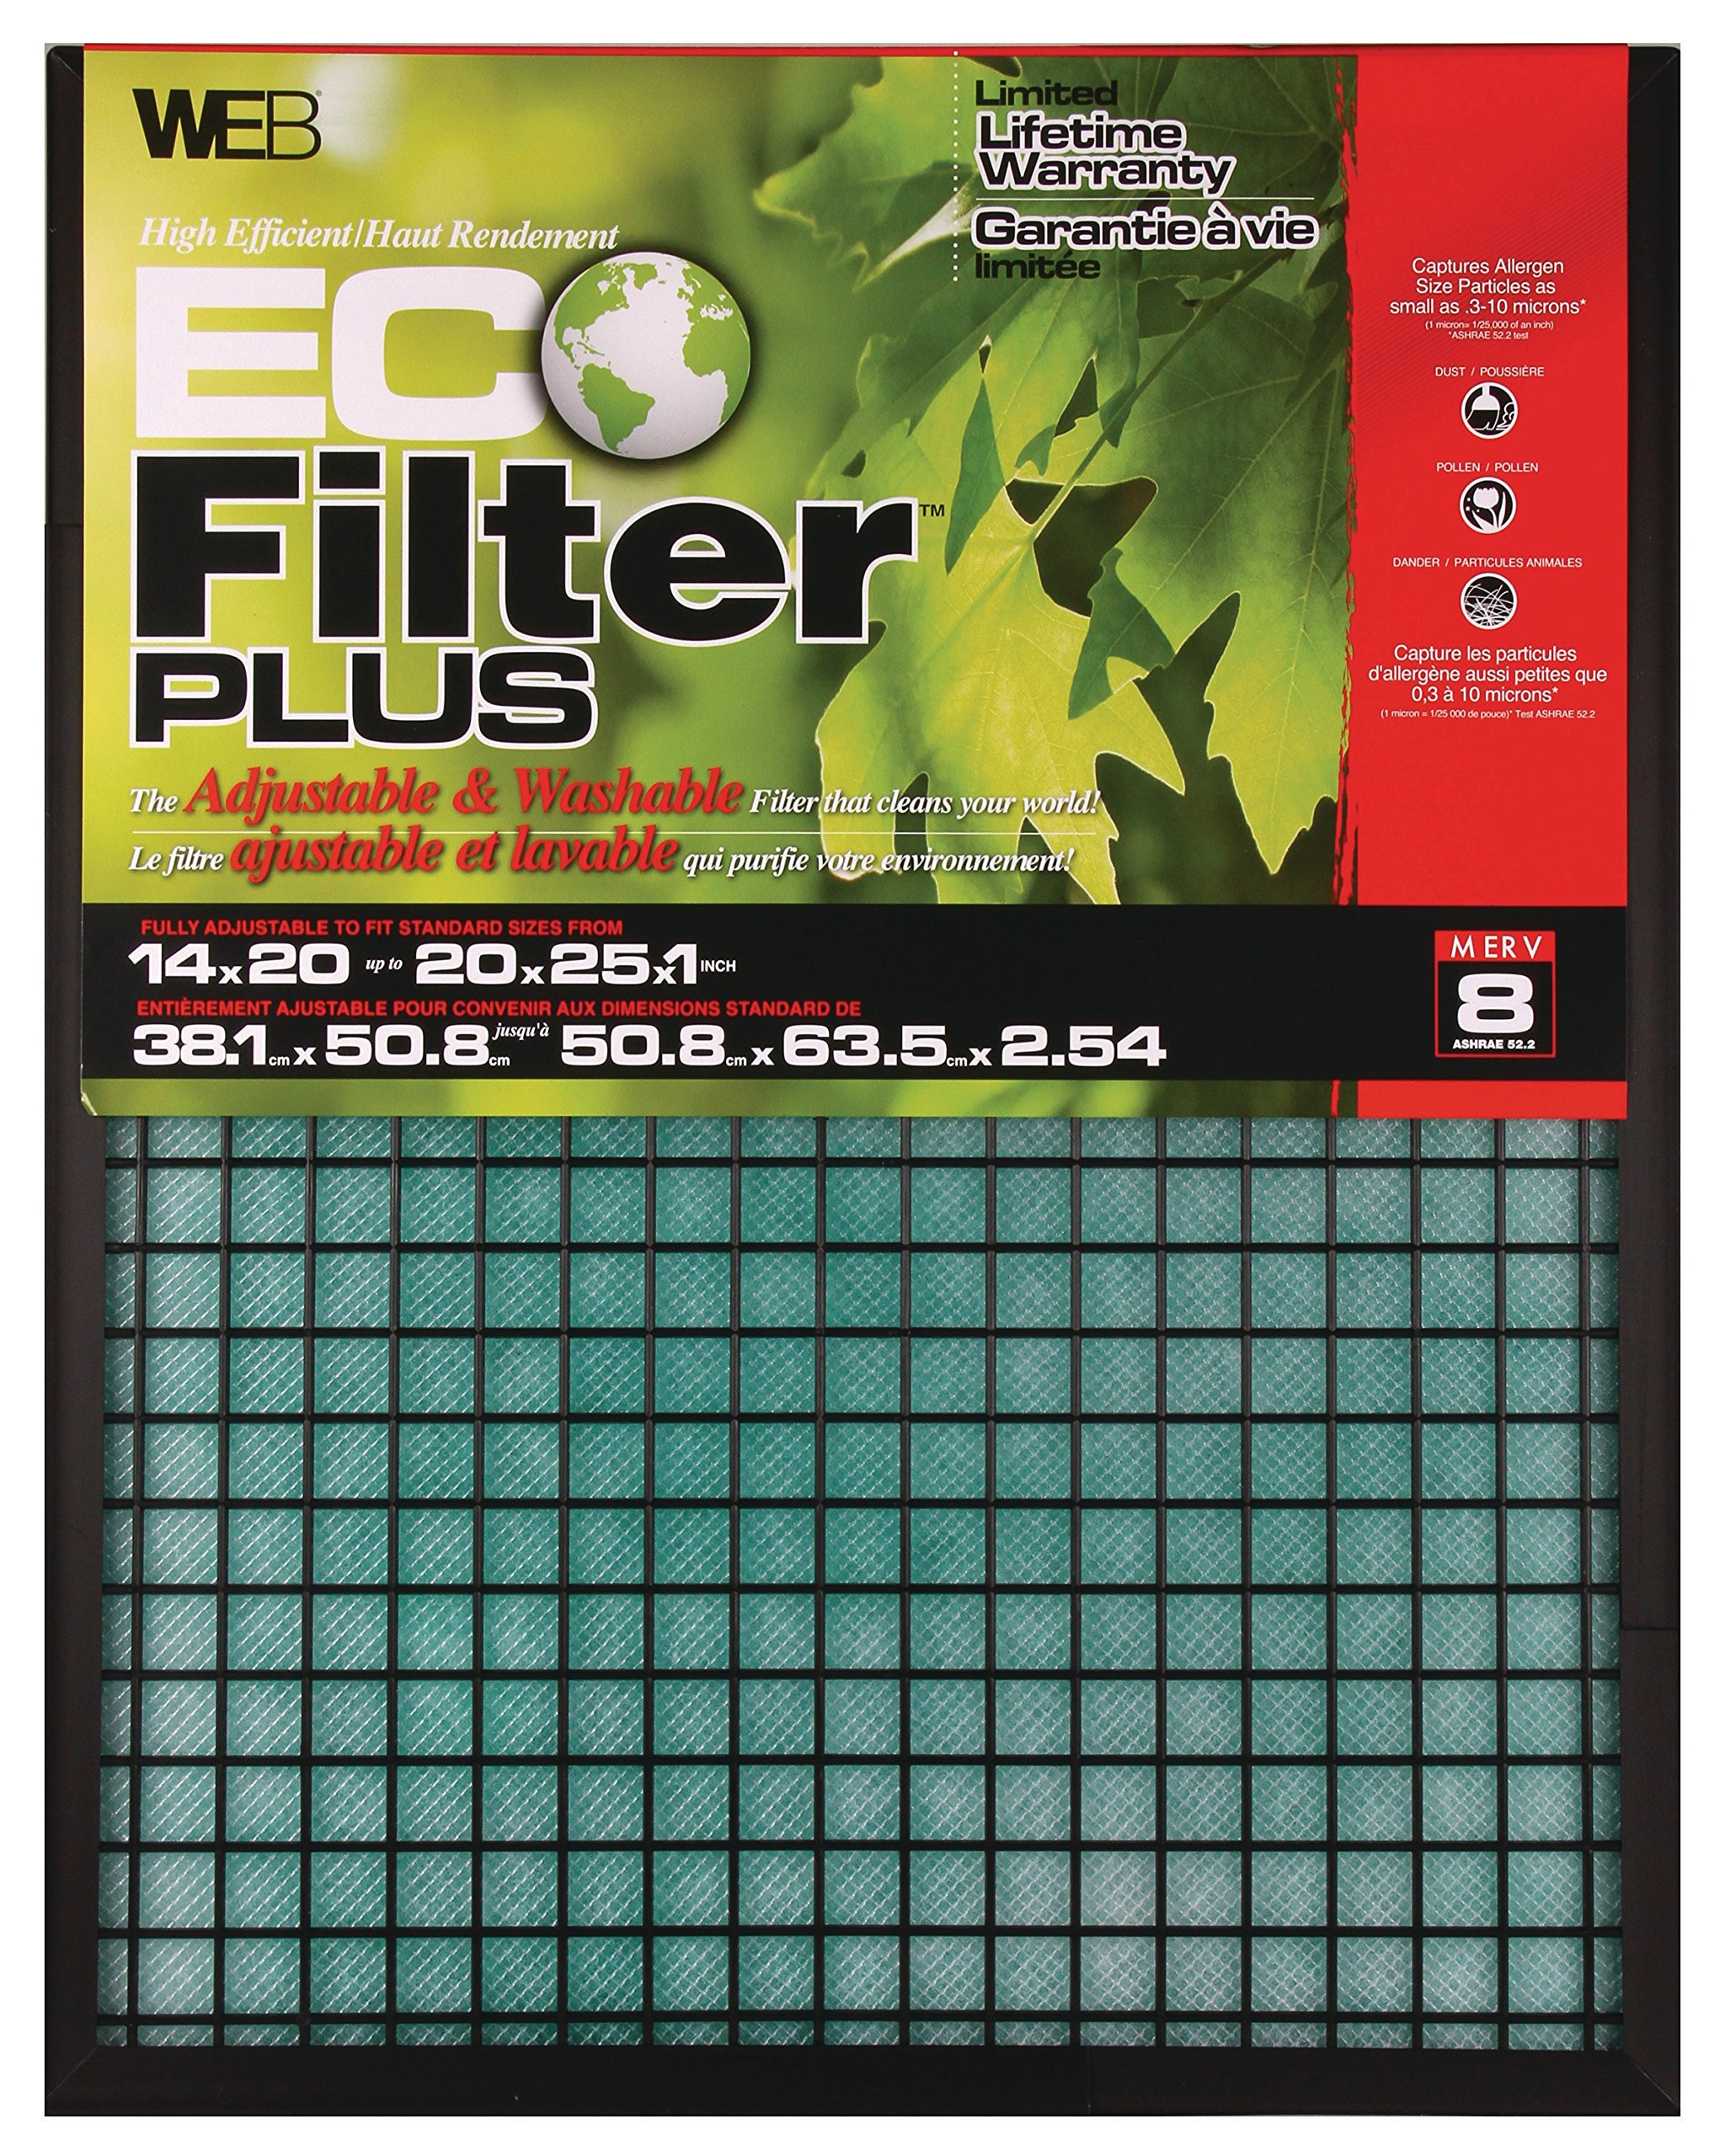 WEB Eco Filter Plus Adjustable Air Filter 14x20x1 up to 20x25x1 by WEB